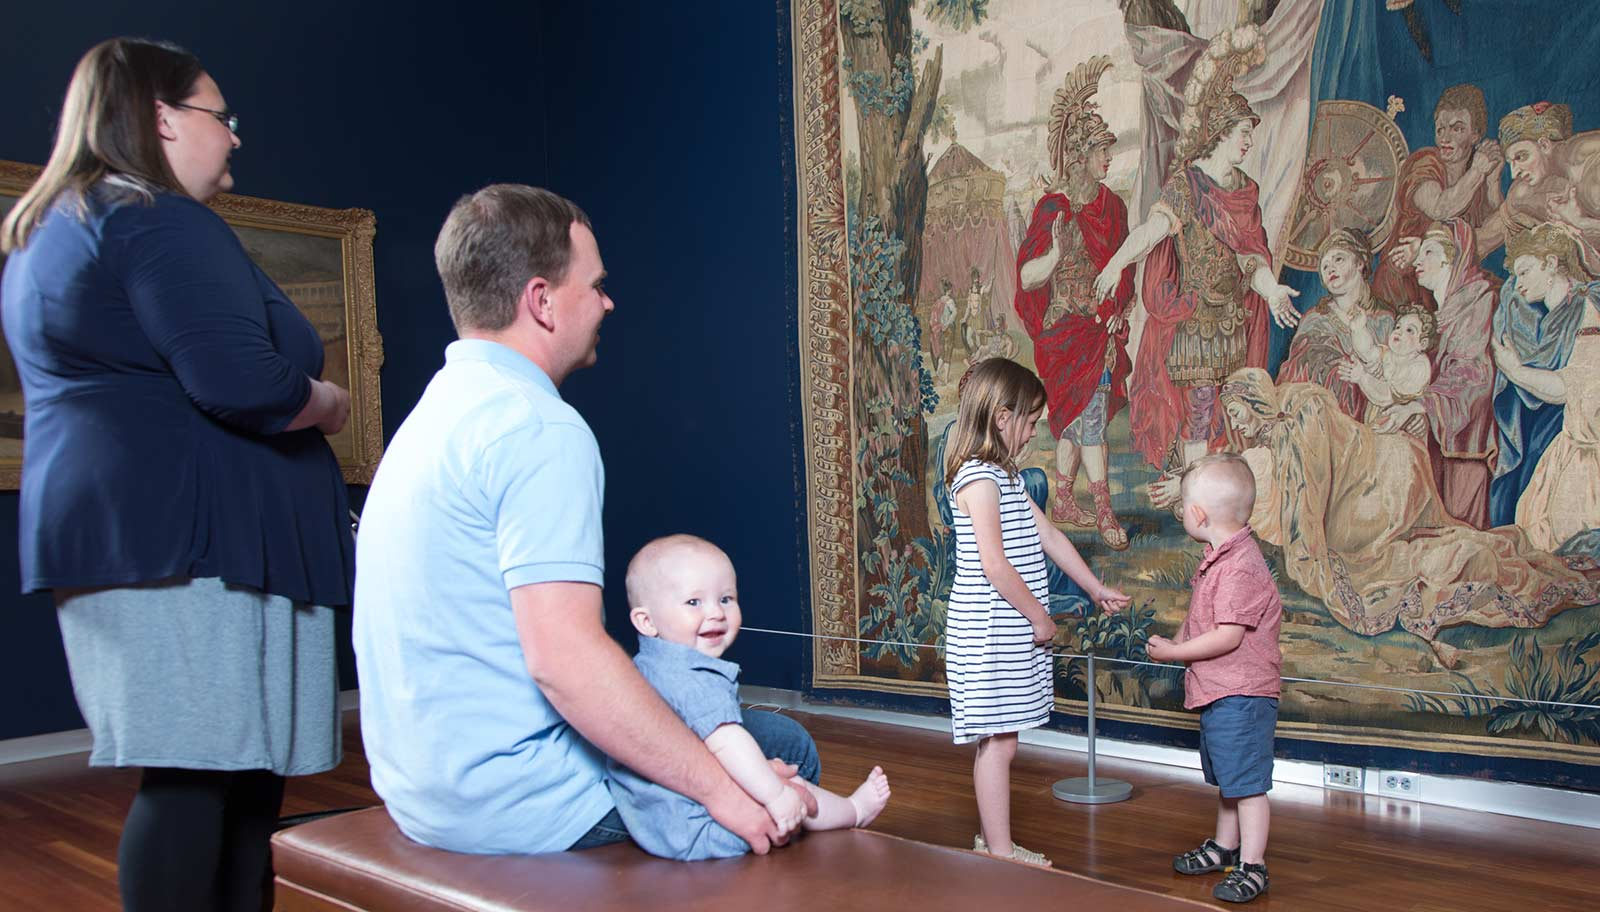 Family with young children viewing art